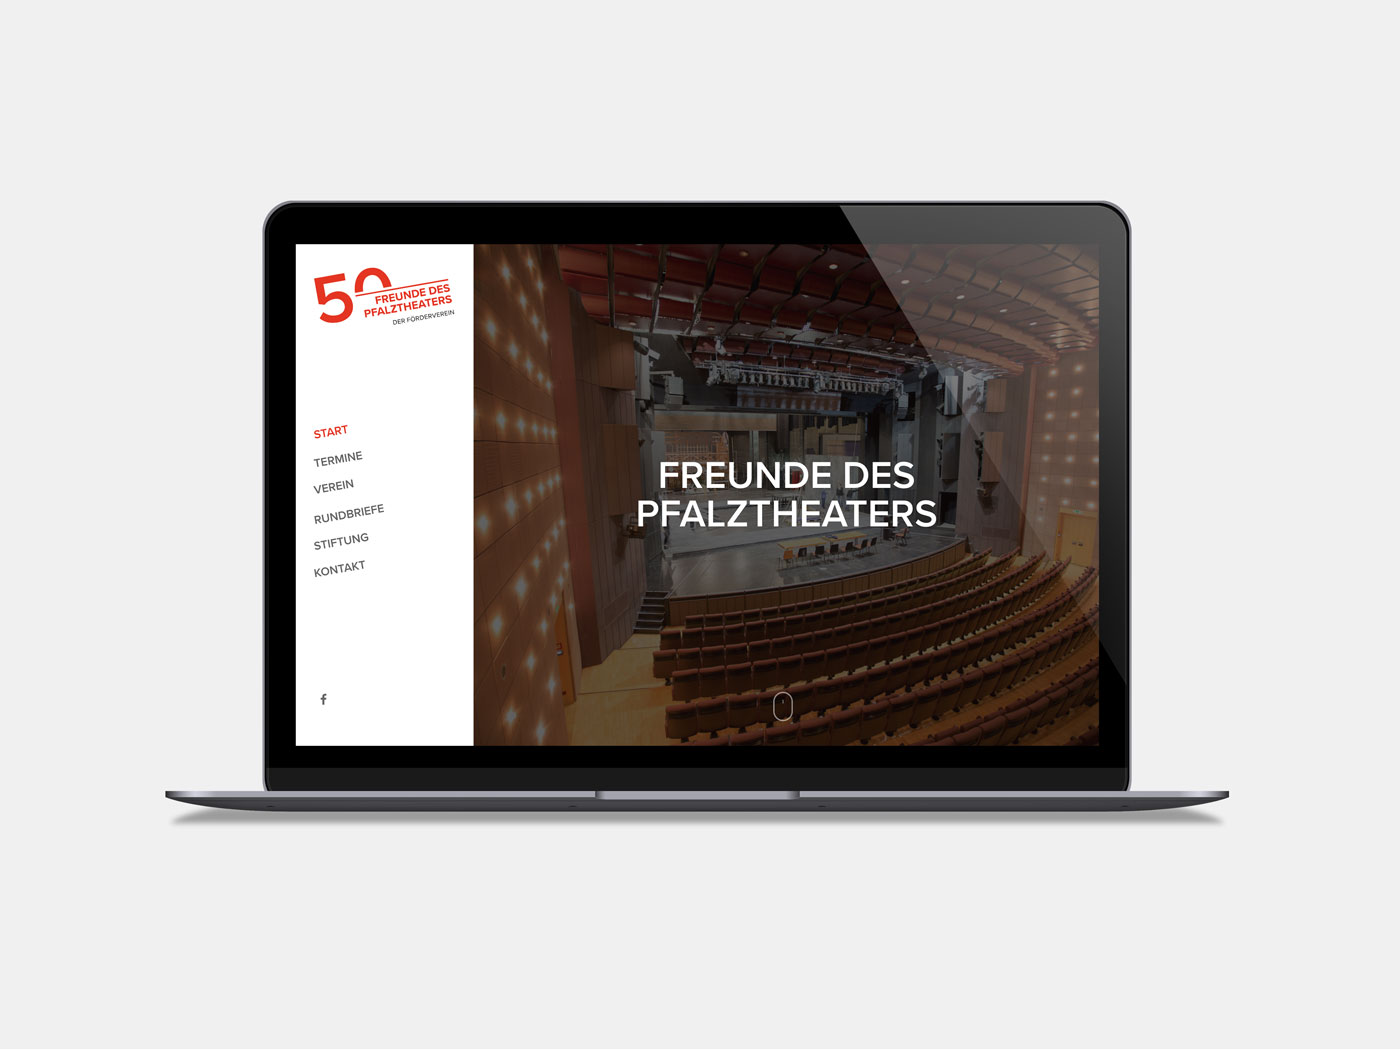 Projekte-Freunde-Pfalztheater-Website-Notebook